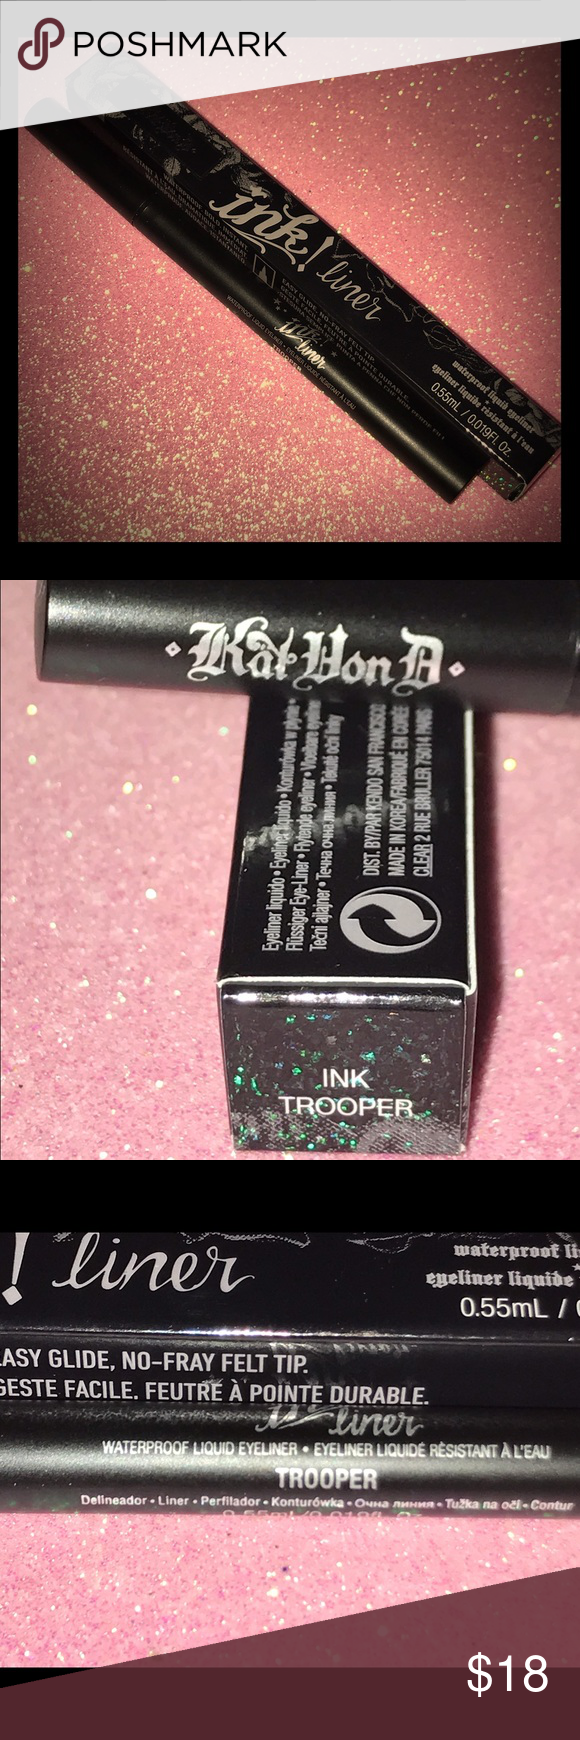 Kat Von D Ink Liner Trooper New In Box Never Used This is